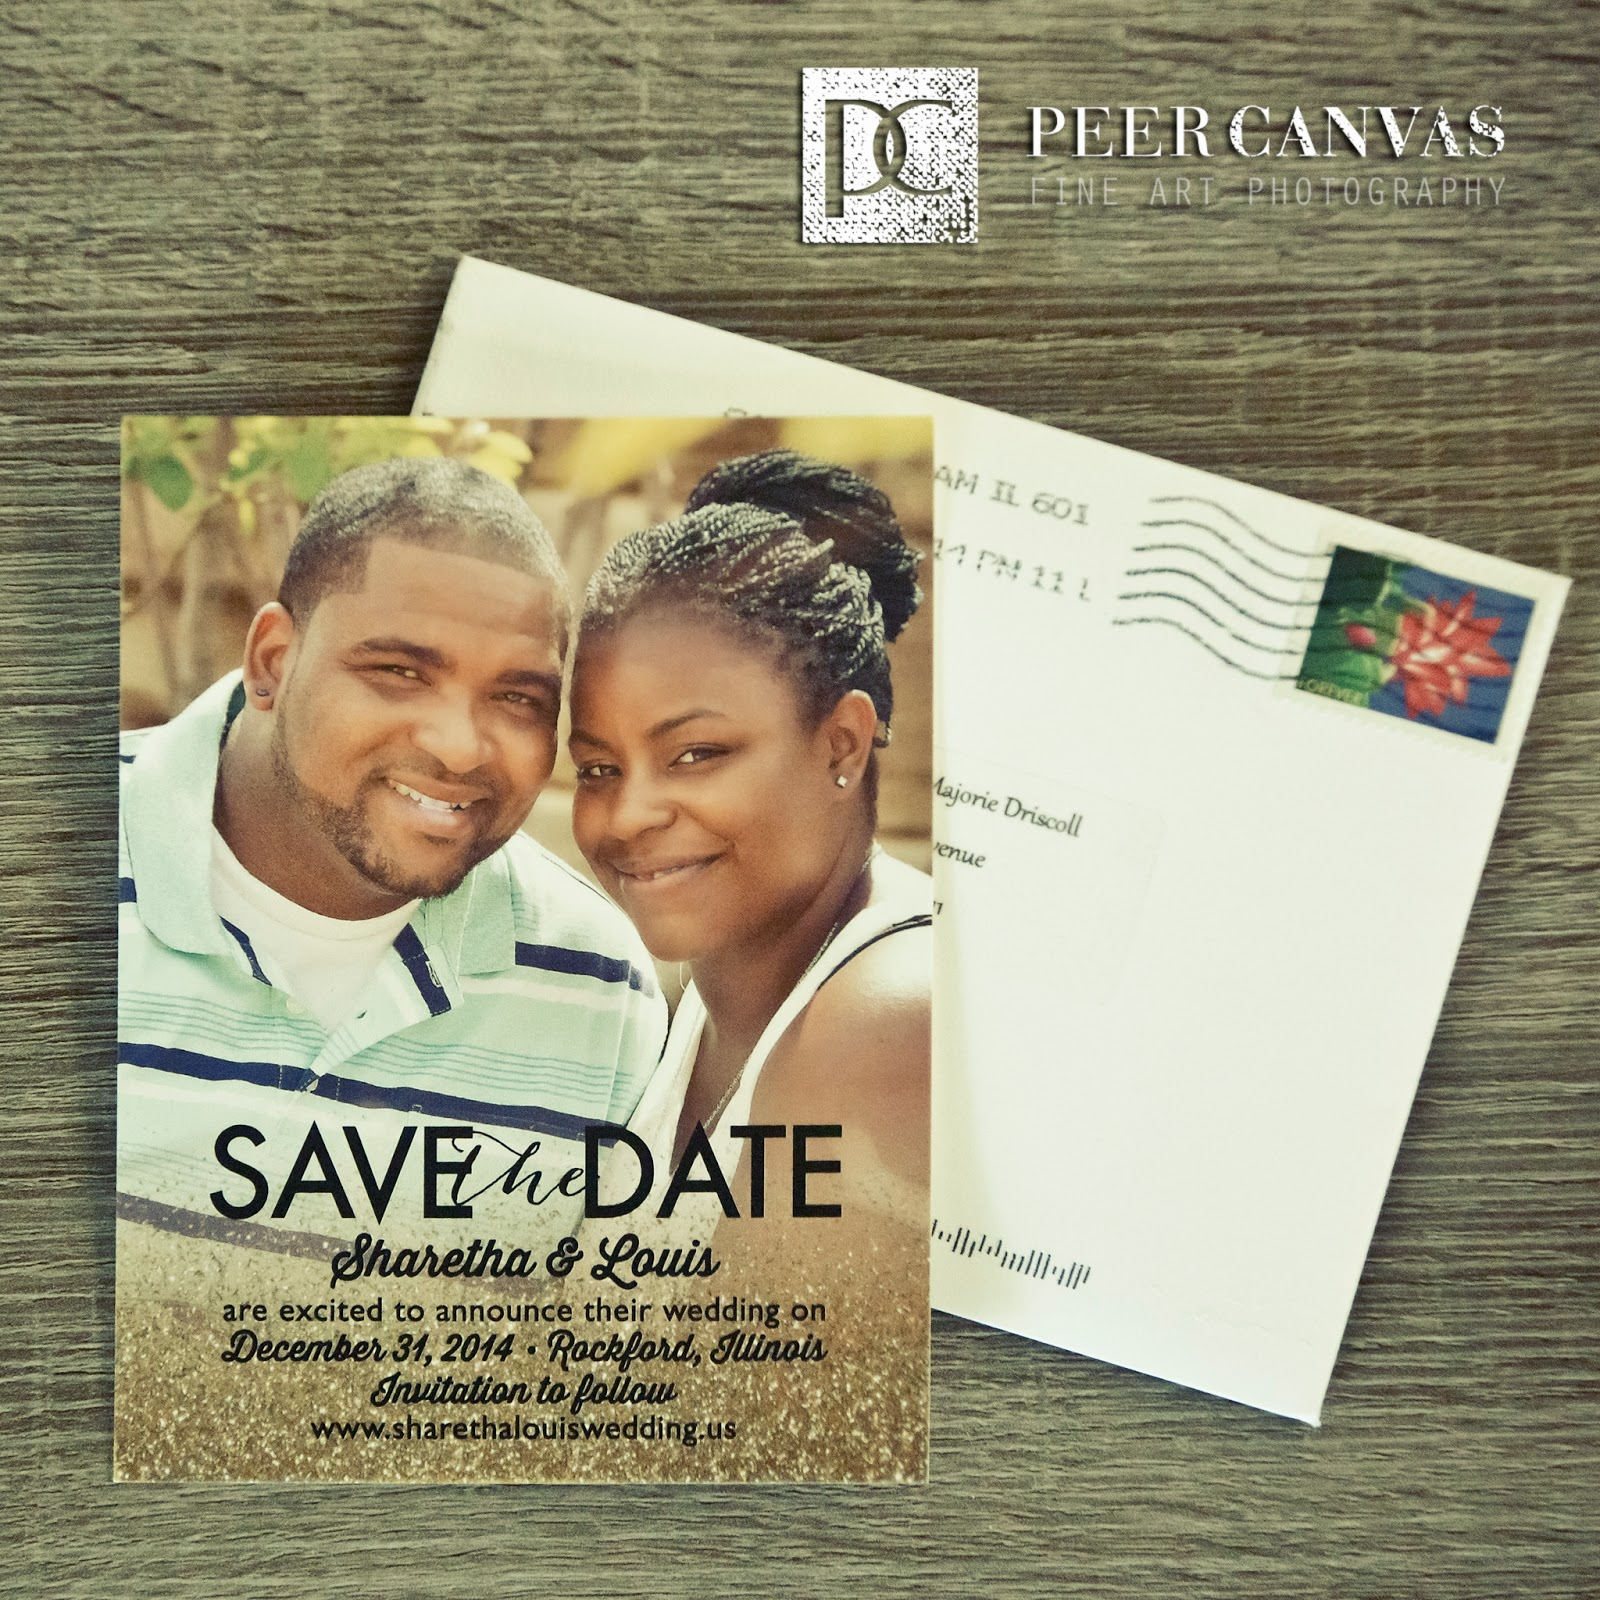 Vibrant Colors Smiling Faces What Is Not To Like Bonus These Two Also Have Their Own Wedding Website A Place All Guests